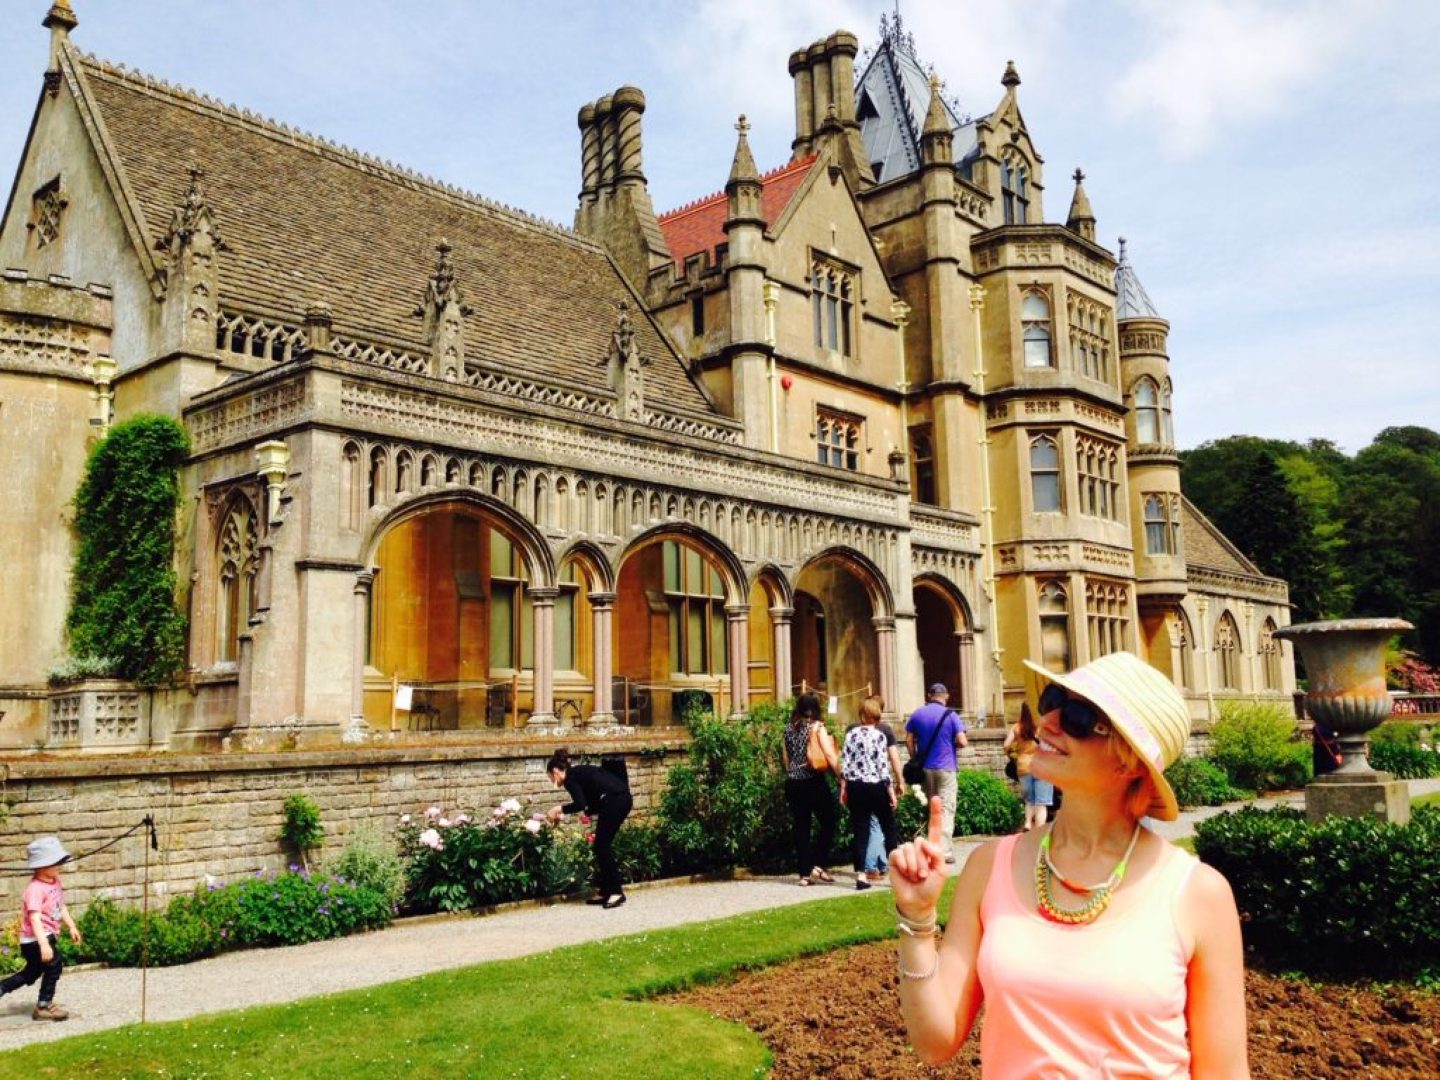 Tyntesfield house - just off the motorway